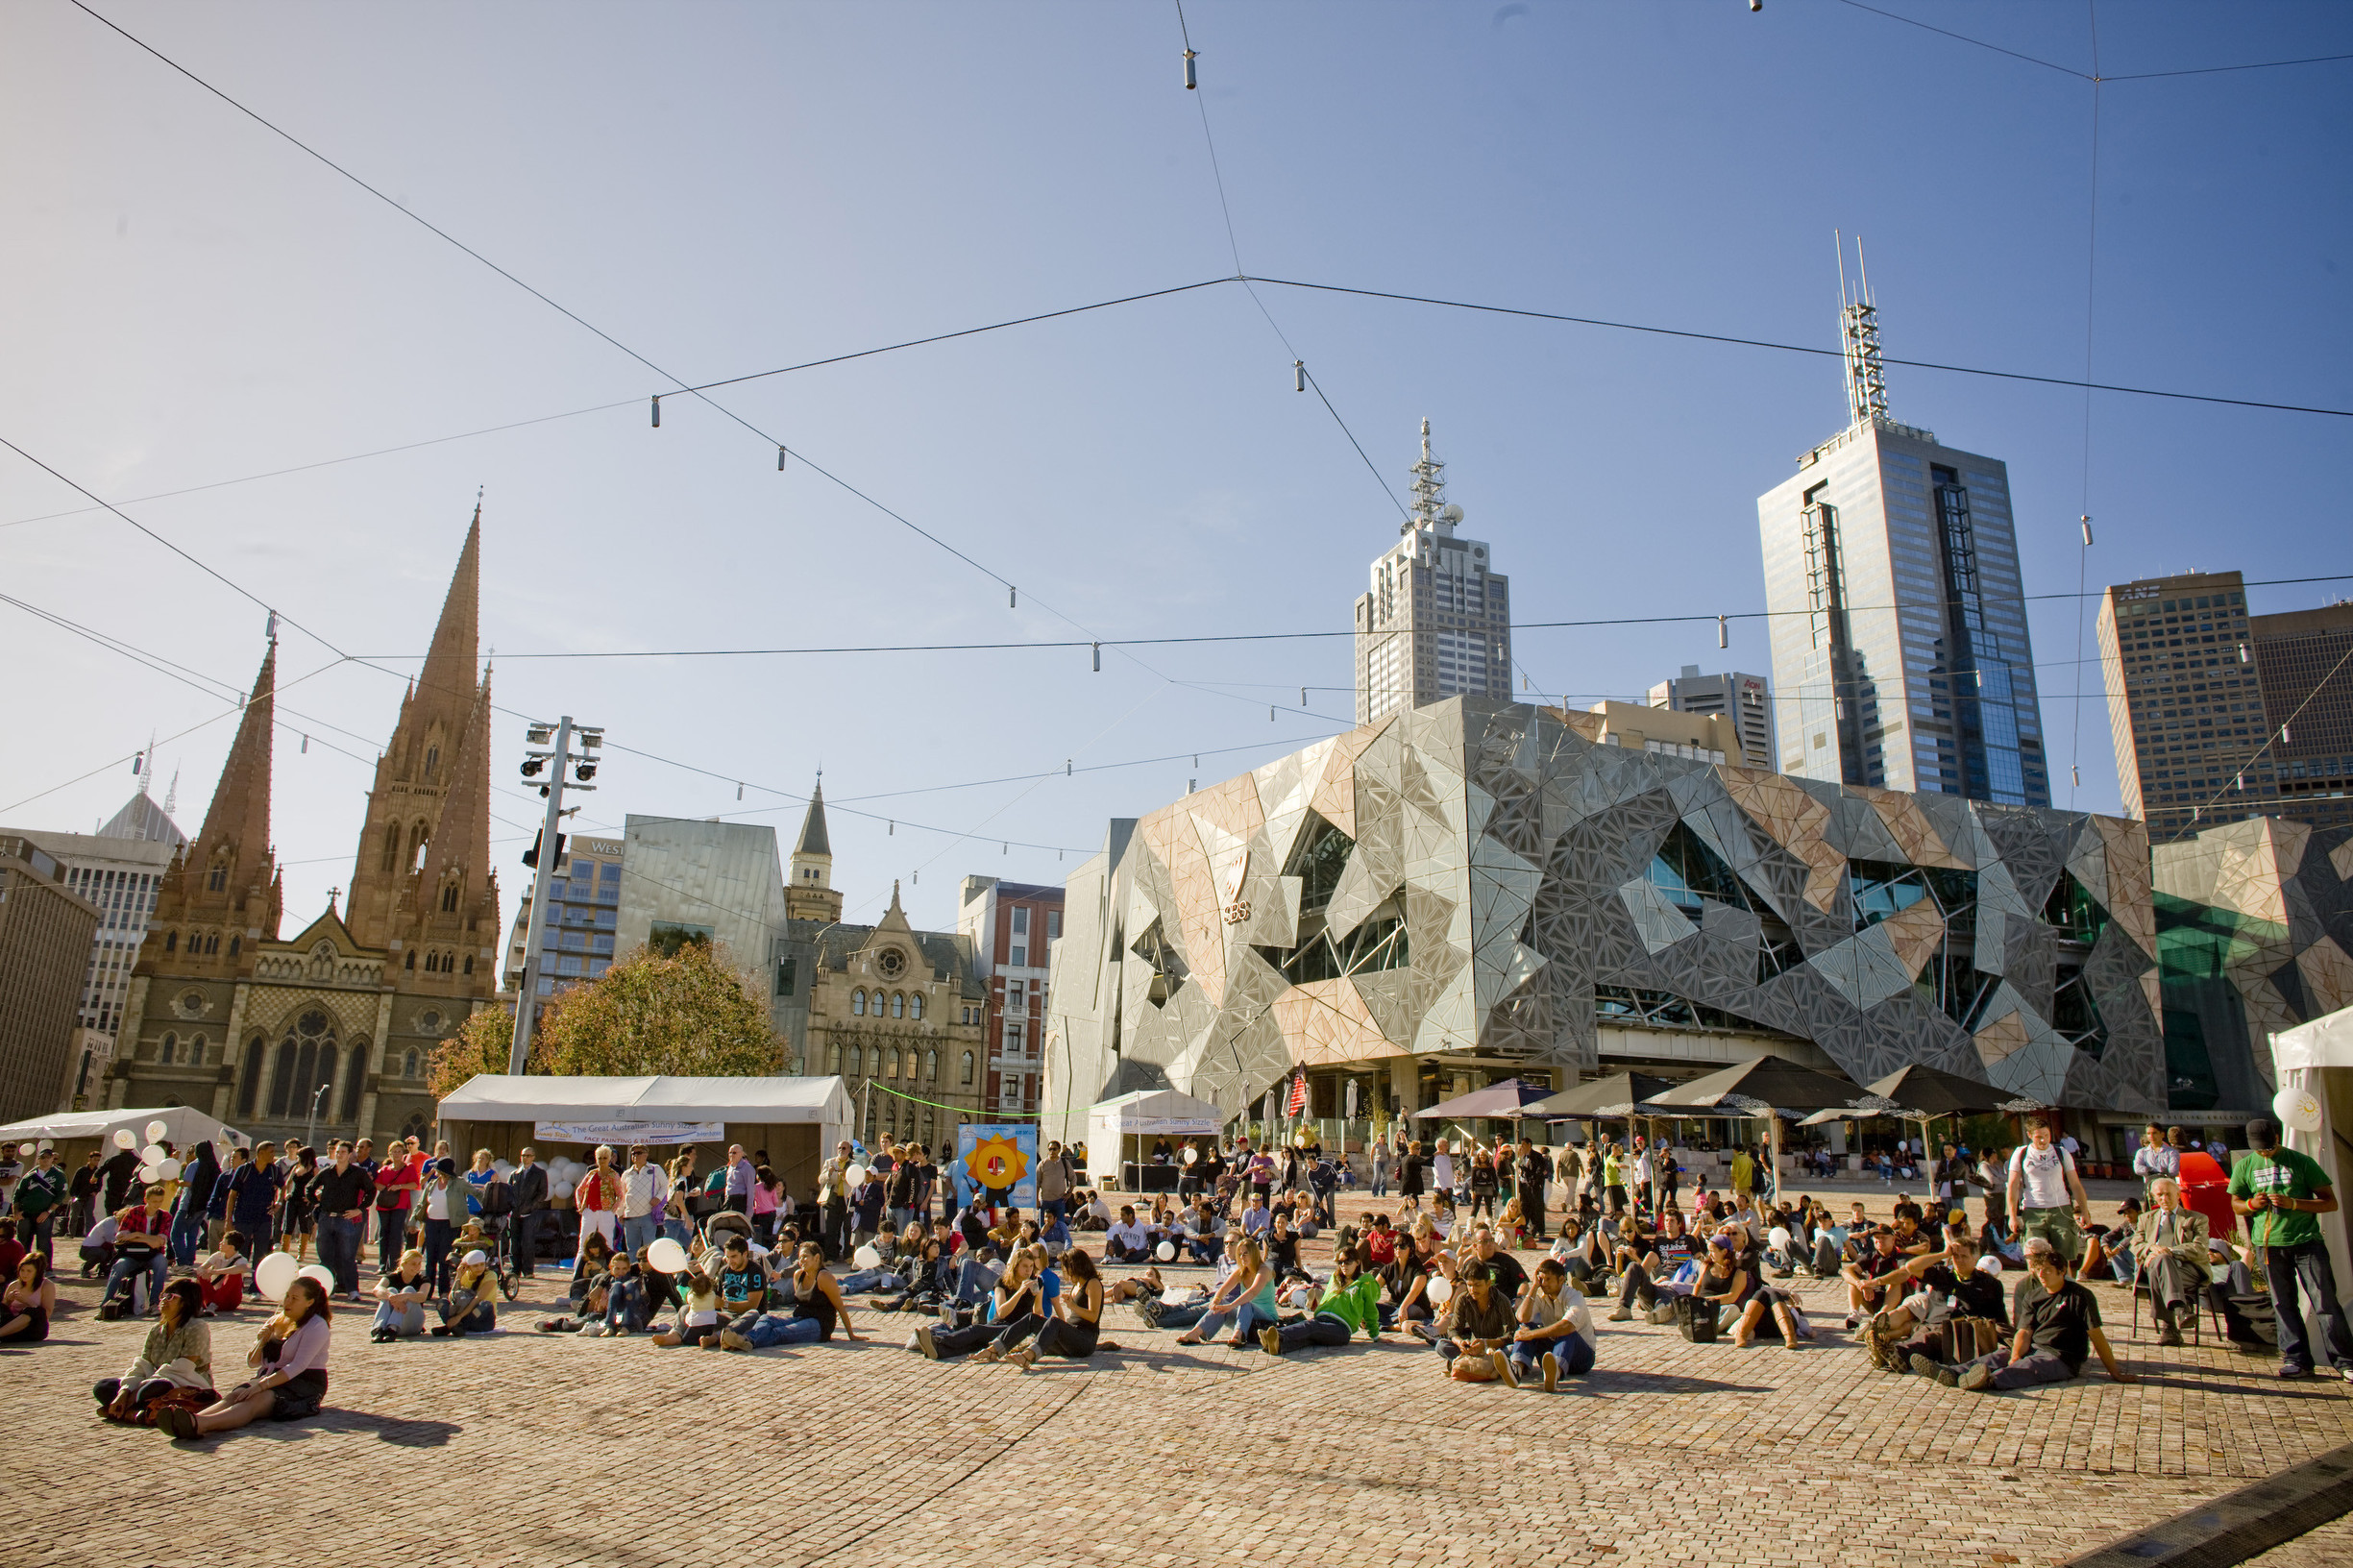 Fed Square is teaming up with MTV to support local musicians